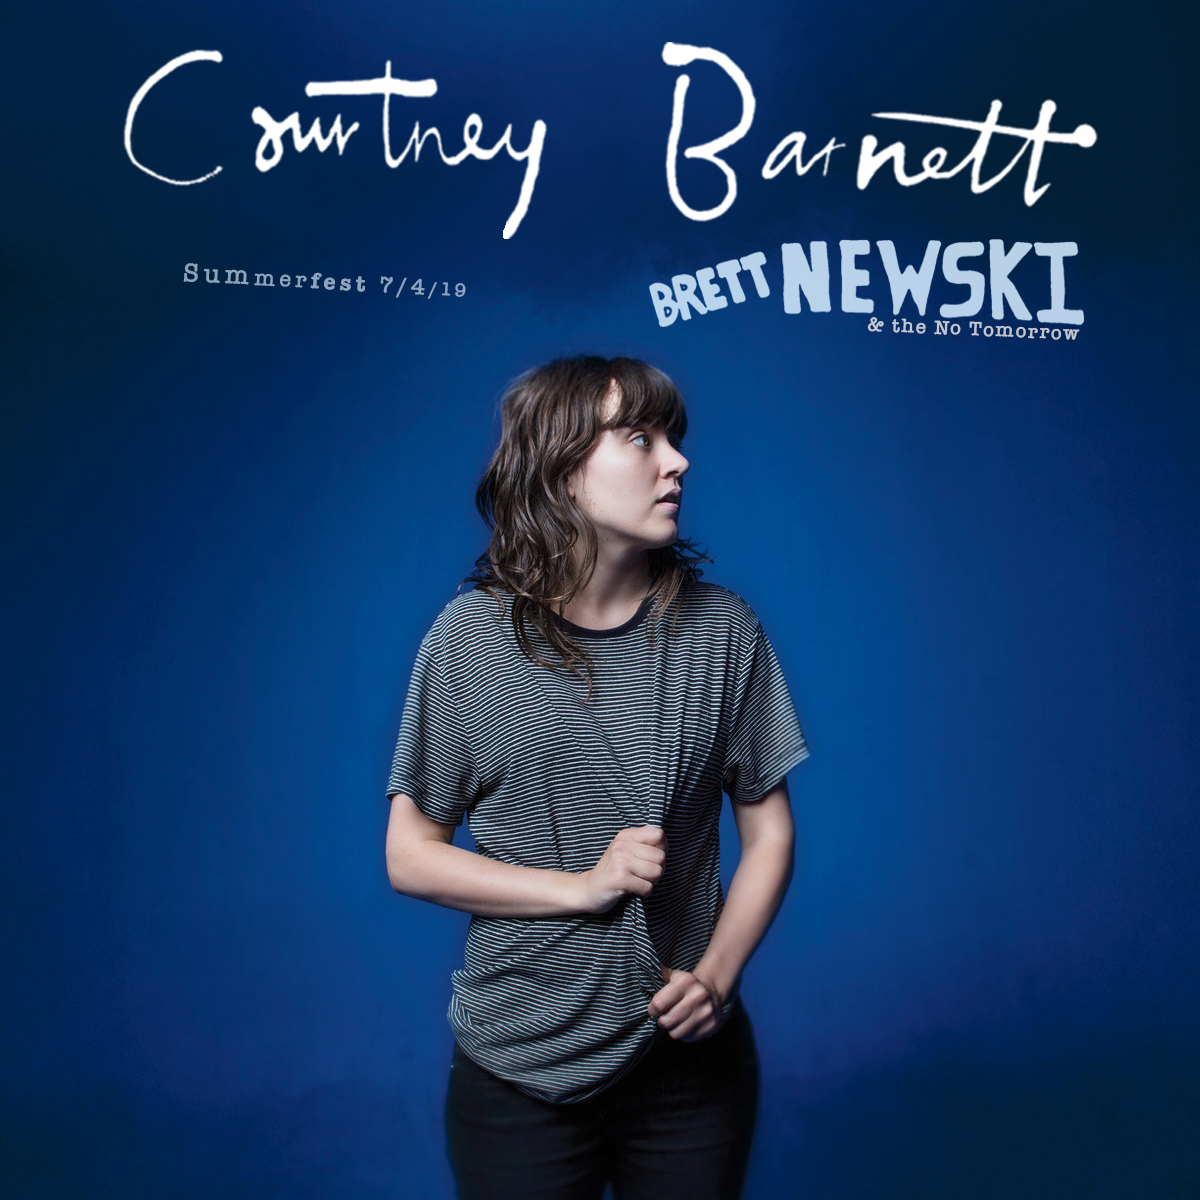 Courtney Barnett Newski Summerfest v1.jpg